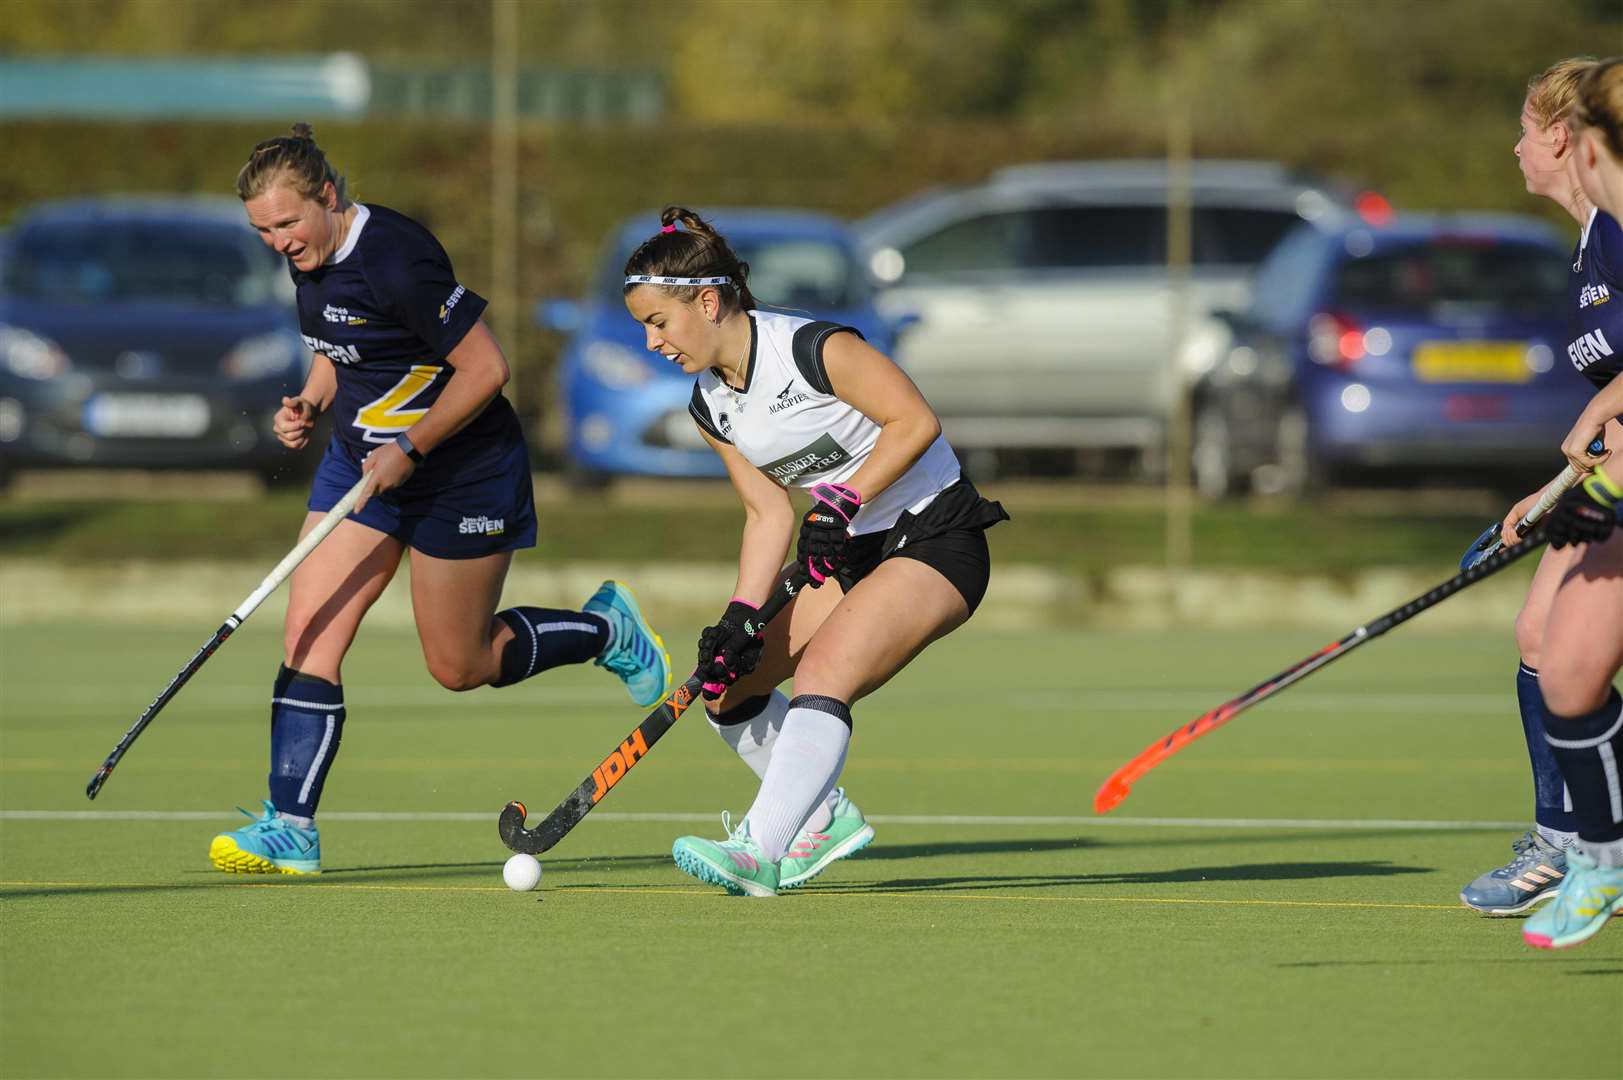 Weybread, Suffolk, UK, 03 November 2018..Hockey action from Harleston Magpies Ladies I v Ipswich, Lauren Rowe...Picture: Mark Bullimore Photography. (5187837)